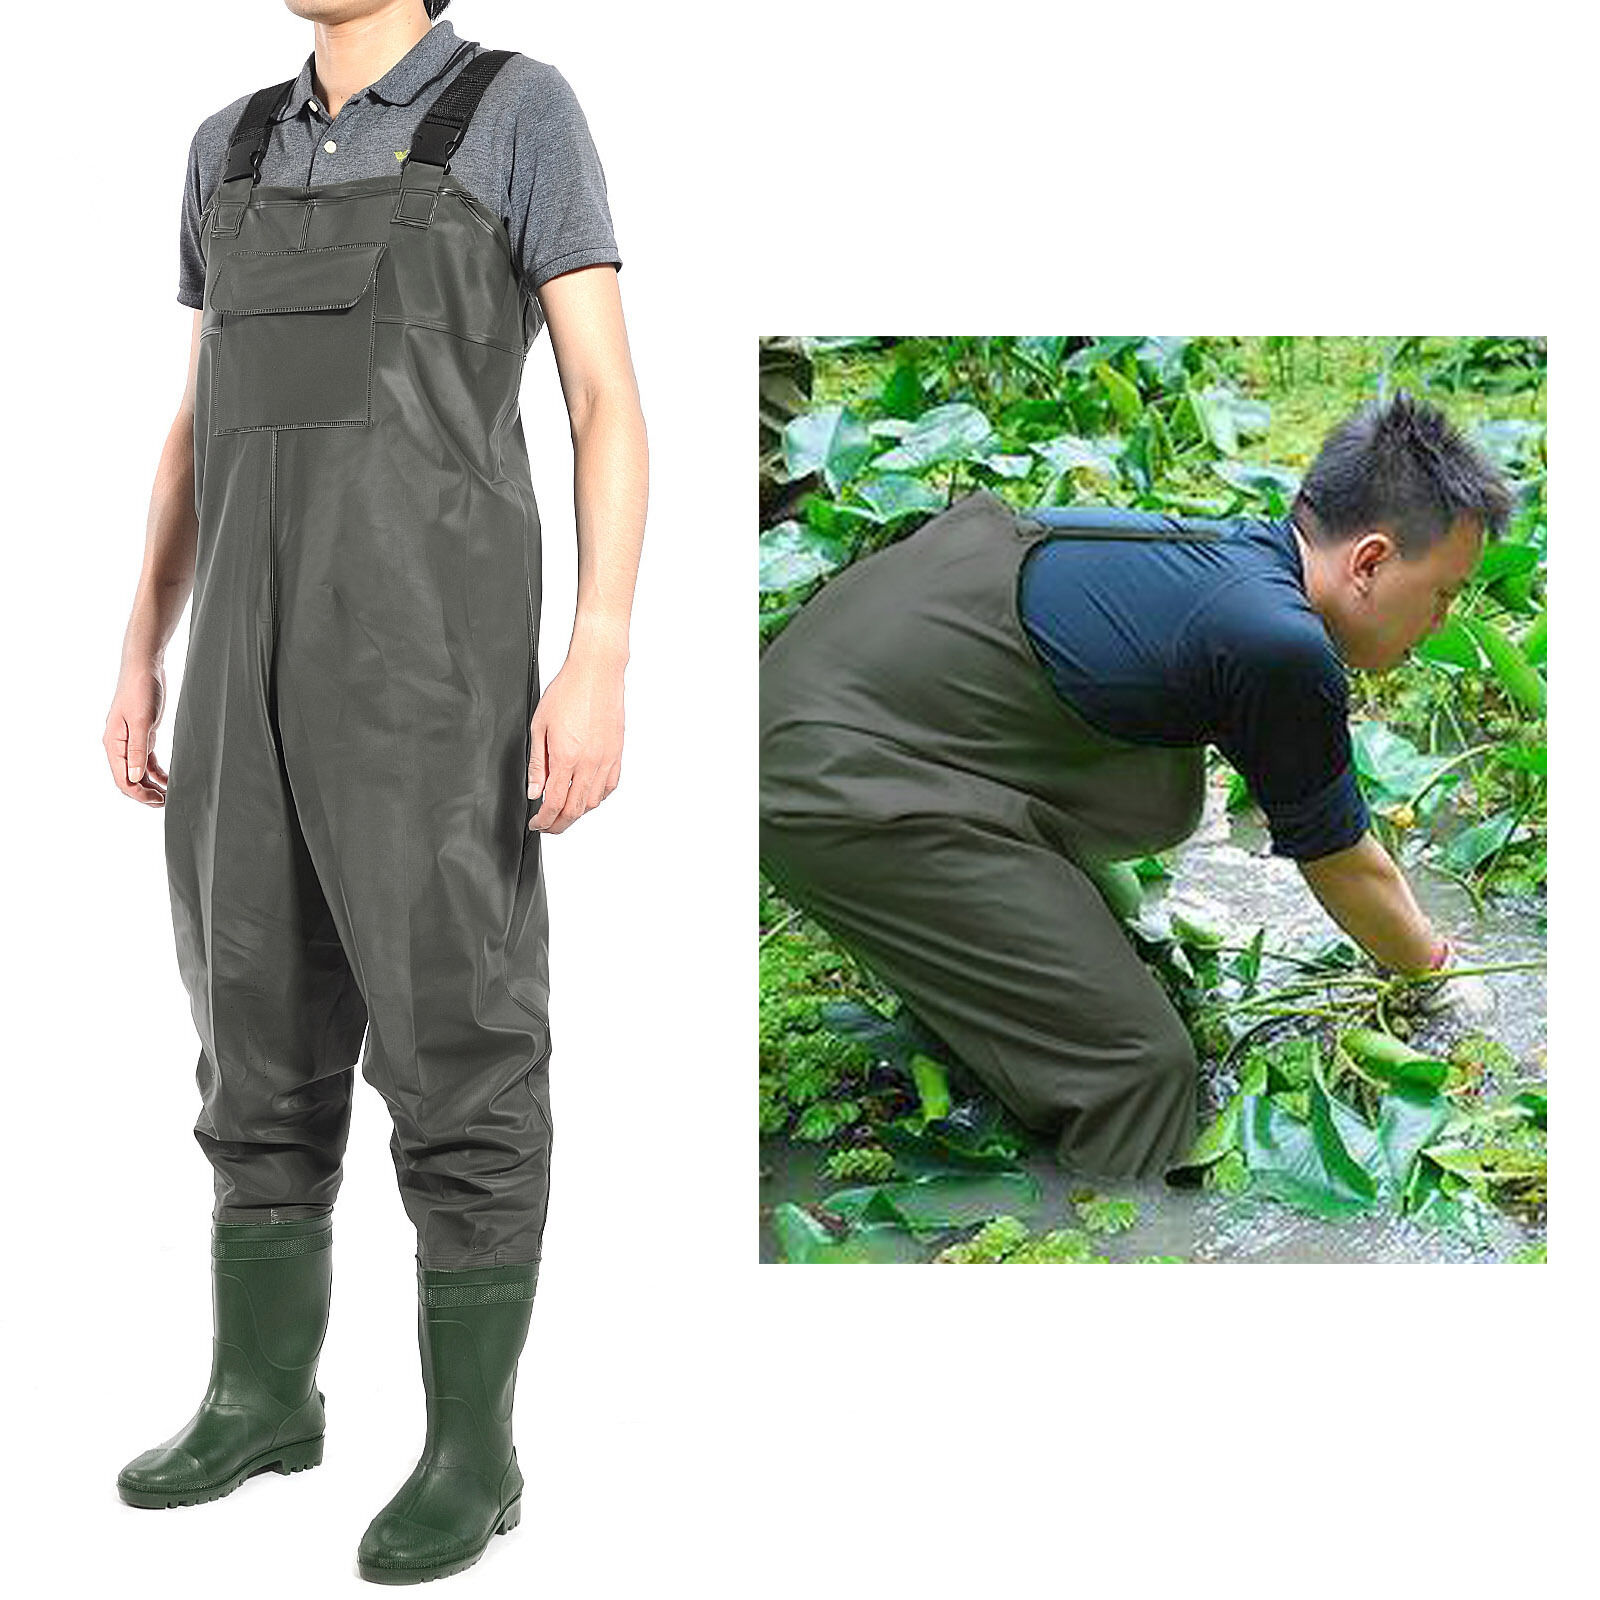 PVC Waterproof  Chest Waders Carp Fly Coarse Fishing Green With Boot  with 100% quality and %100 service